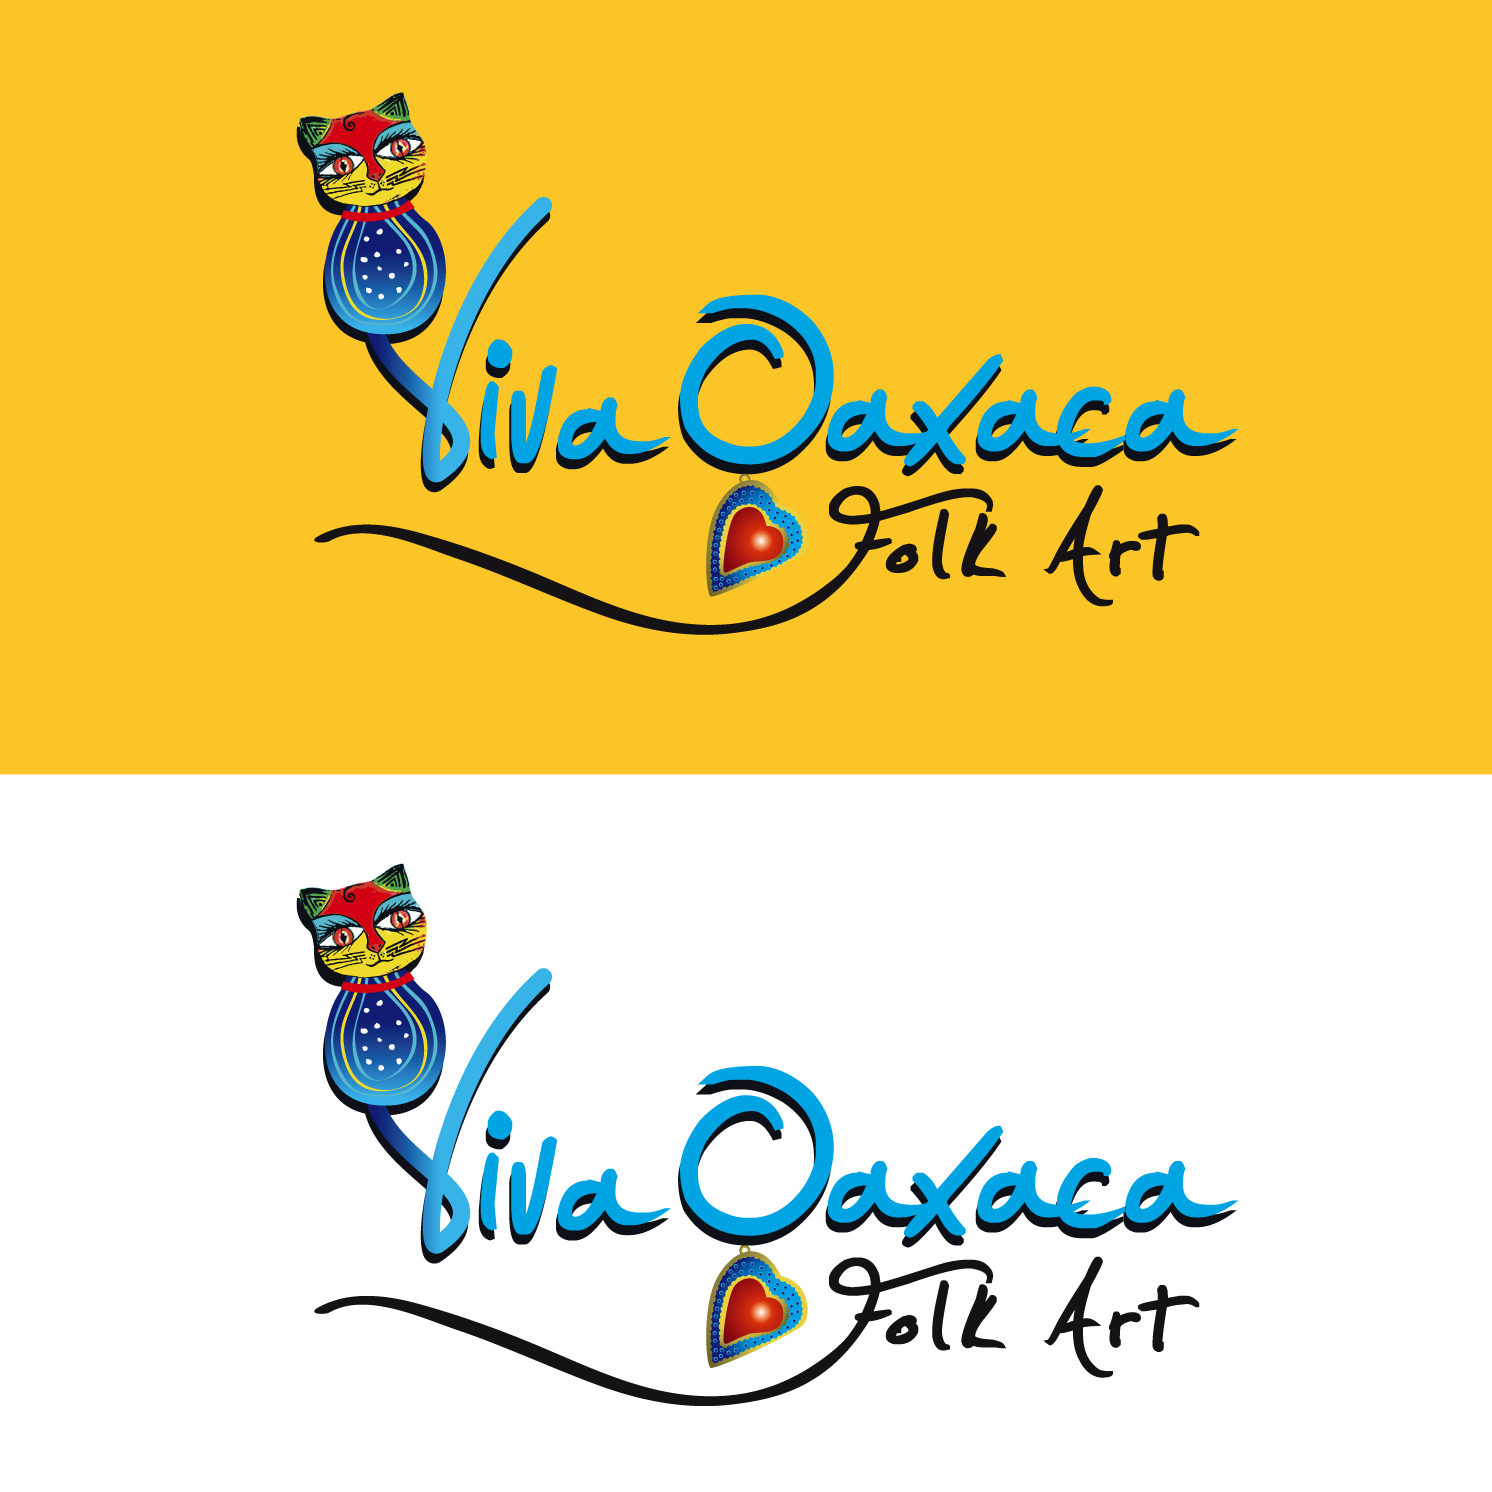 Logo Design by luna - Entry No. 20 in the Logo Design Contest Logo Design Needed for Mexican Handcrafts Website - Viva Oaxaca Folk Art.